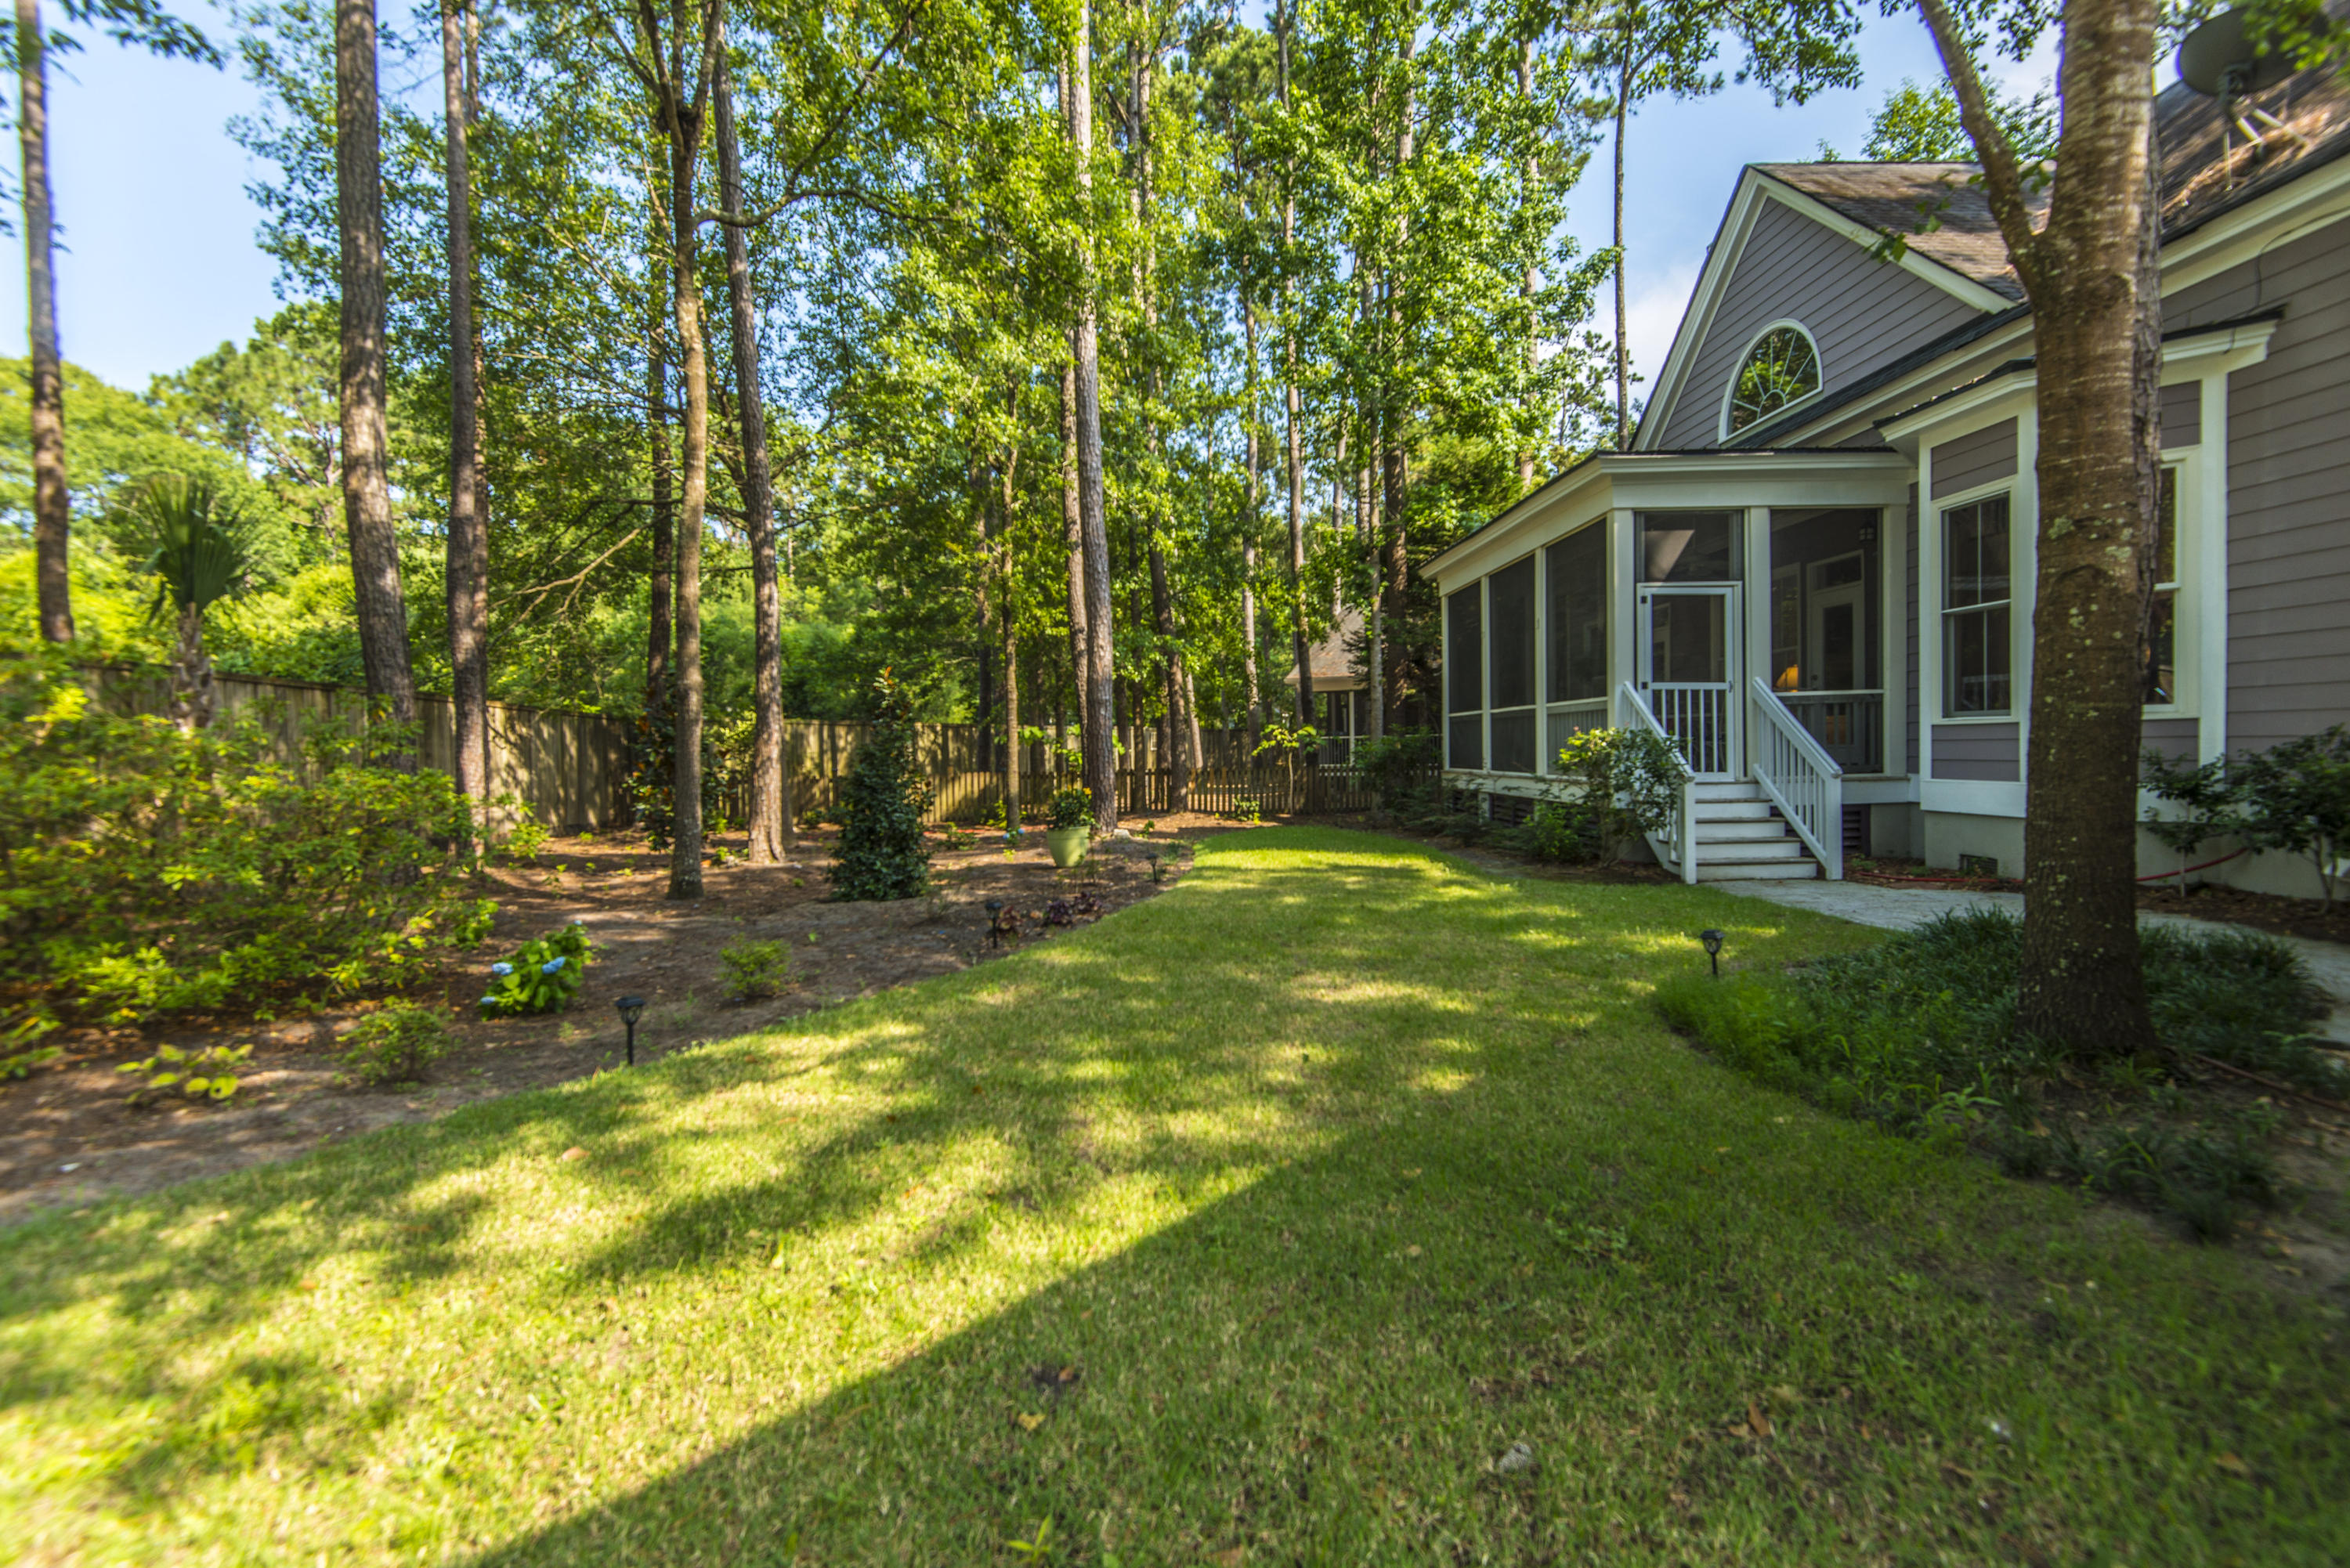 The Villages In St Johns Woods Homes For Sale - 4087 Amy, Johns Island, SC - 26